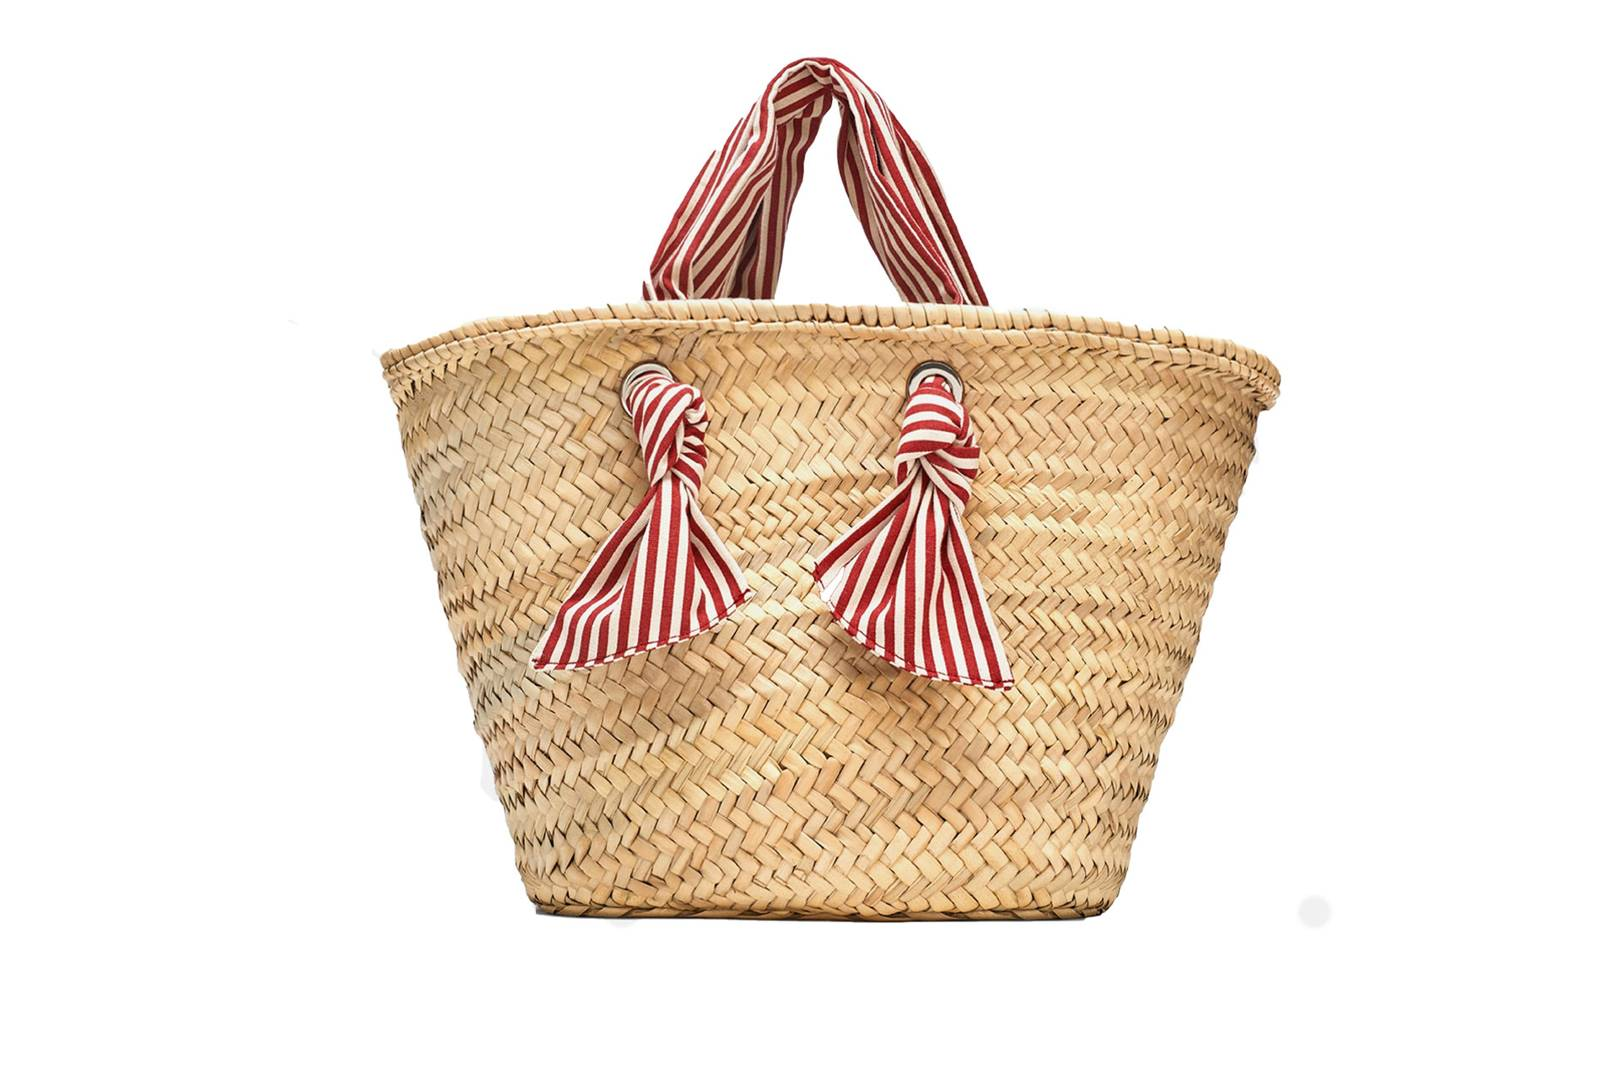 Luggage & Bags Internet Celebrity Handmade Woven Bag Female Straw Bag Shoulder Bag Seaside Holiday Beach Bag Vegetable Basket Bag Shoulder Bags